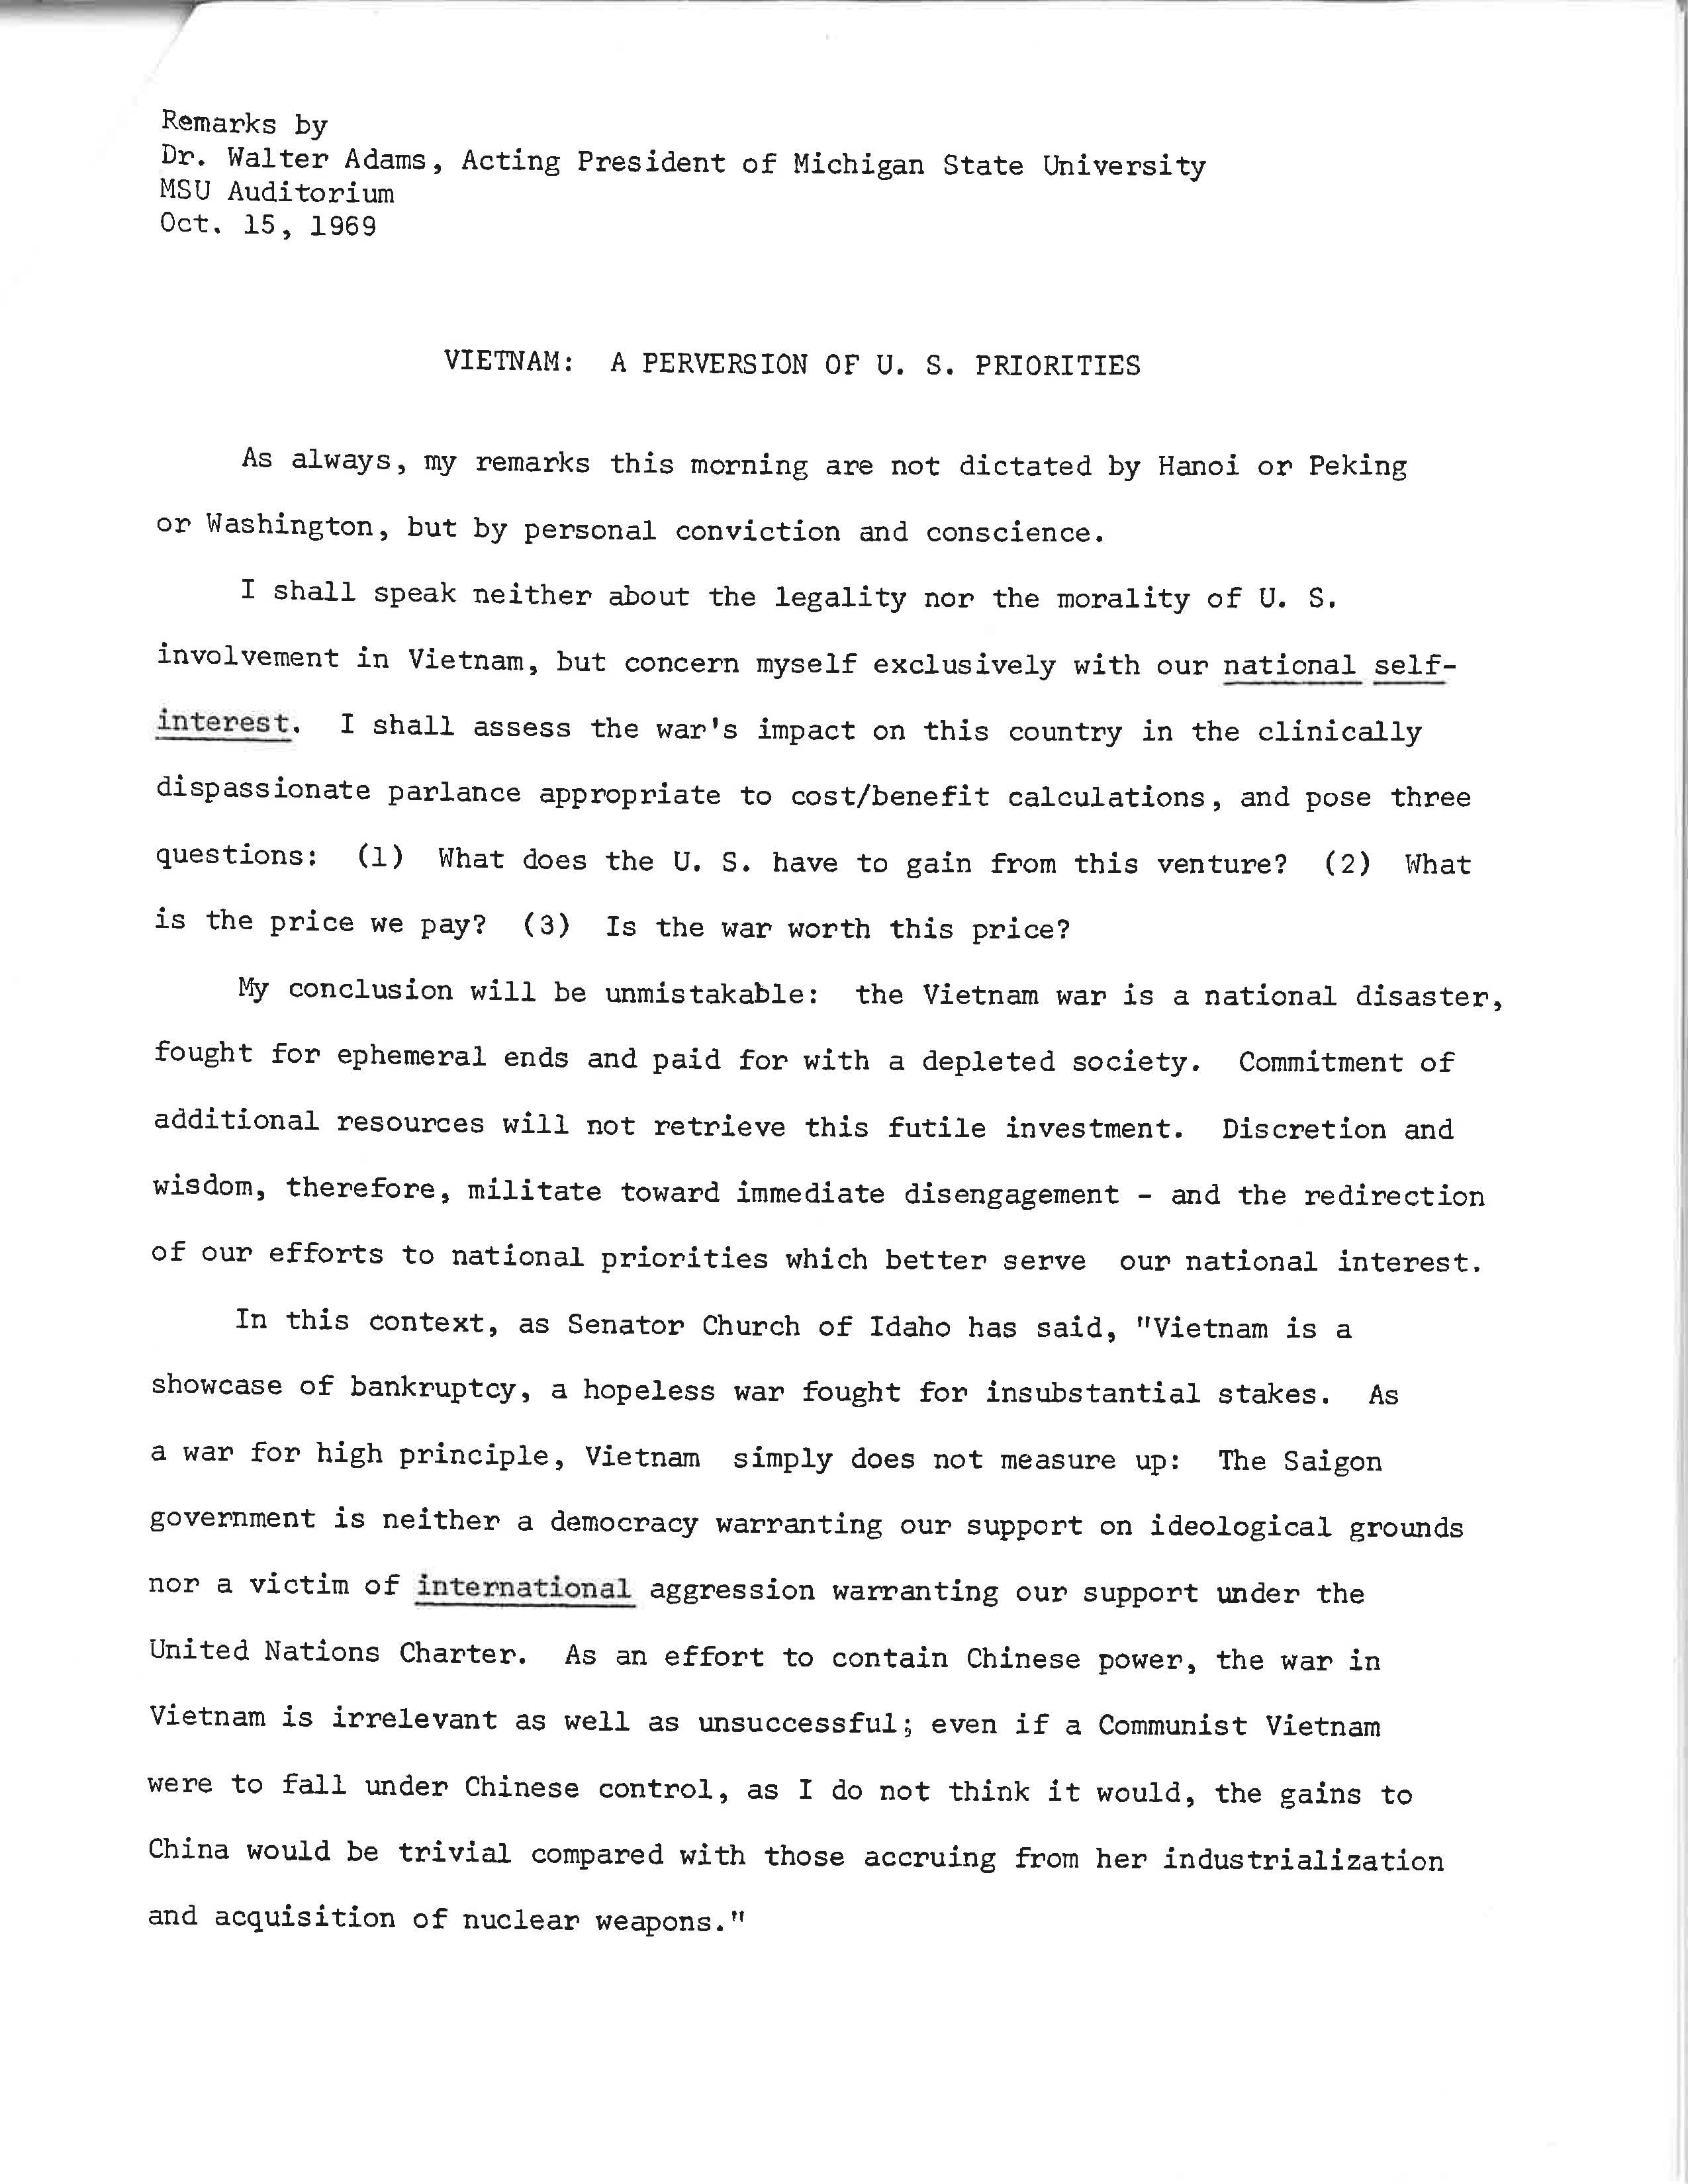 Walter Adams Remarks, Page 2